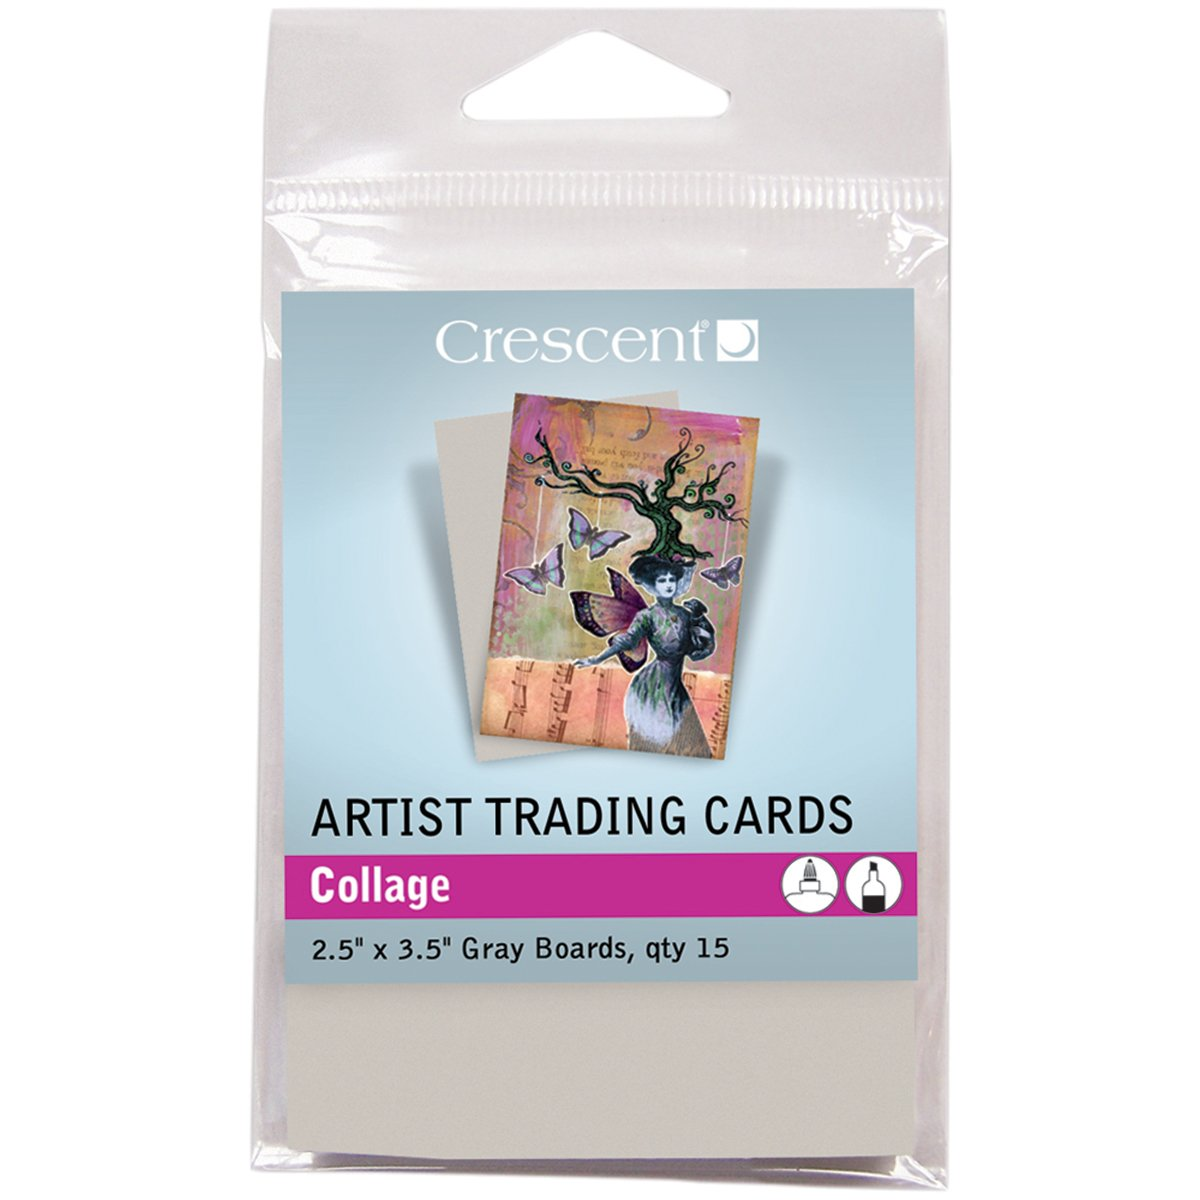 Crescent Cardboard Artist Collage Trading Cards (15 Pack), 2.5' by 3.5'